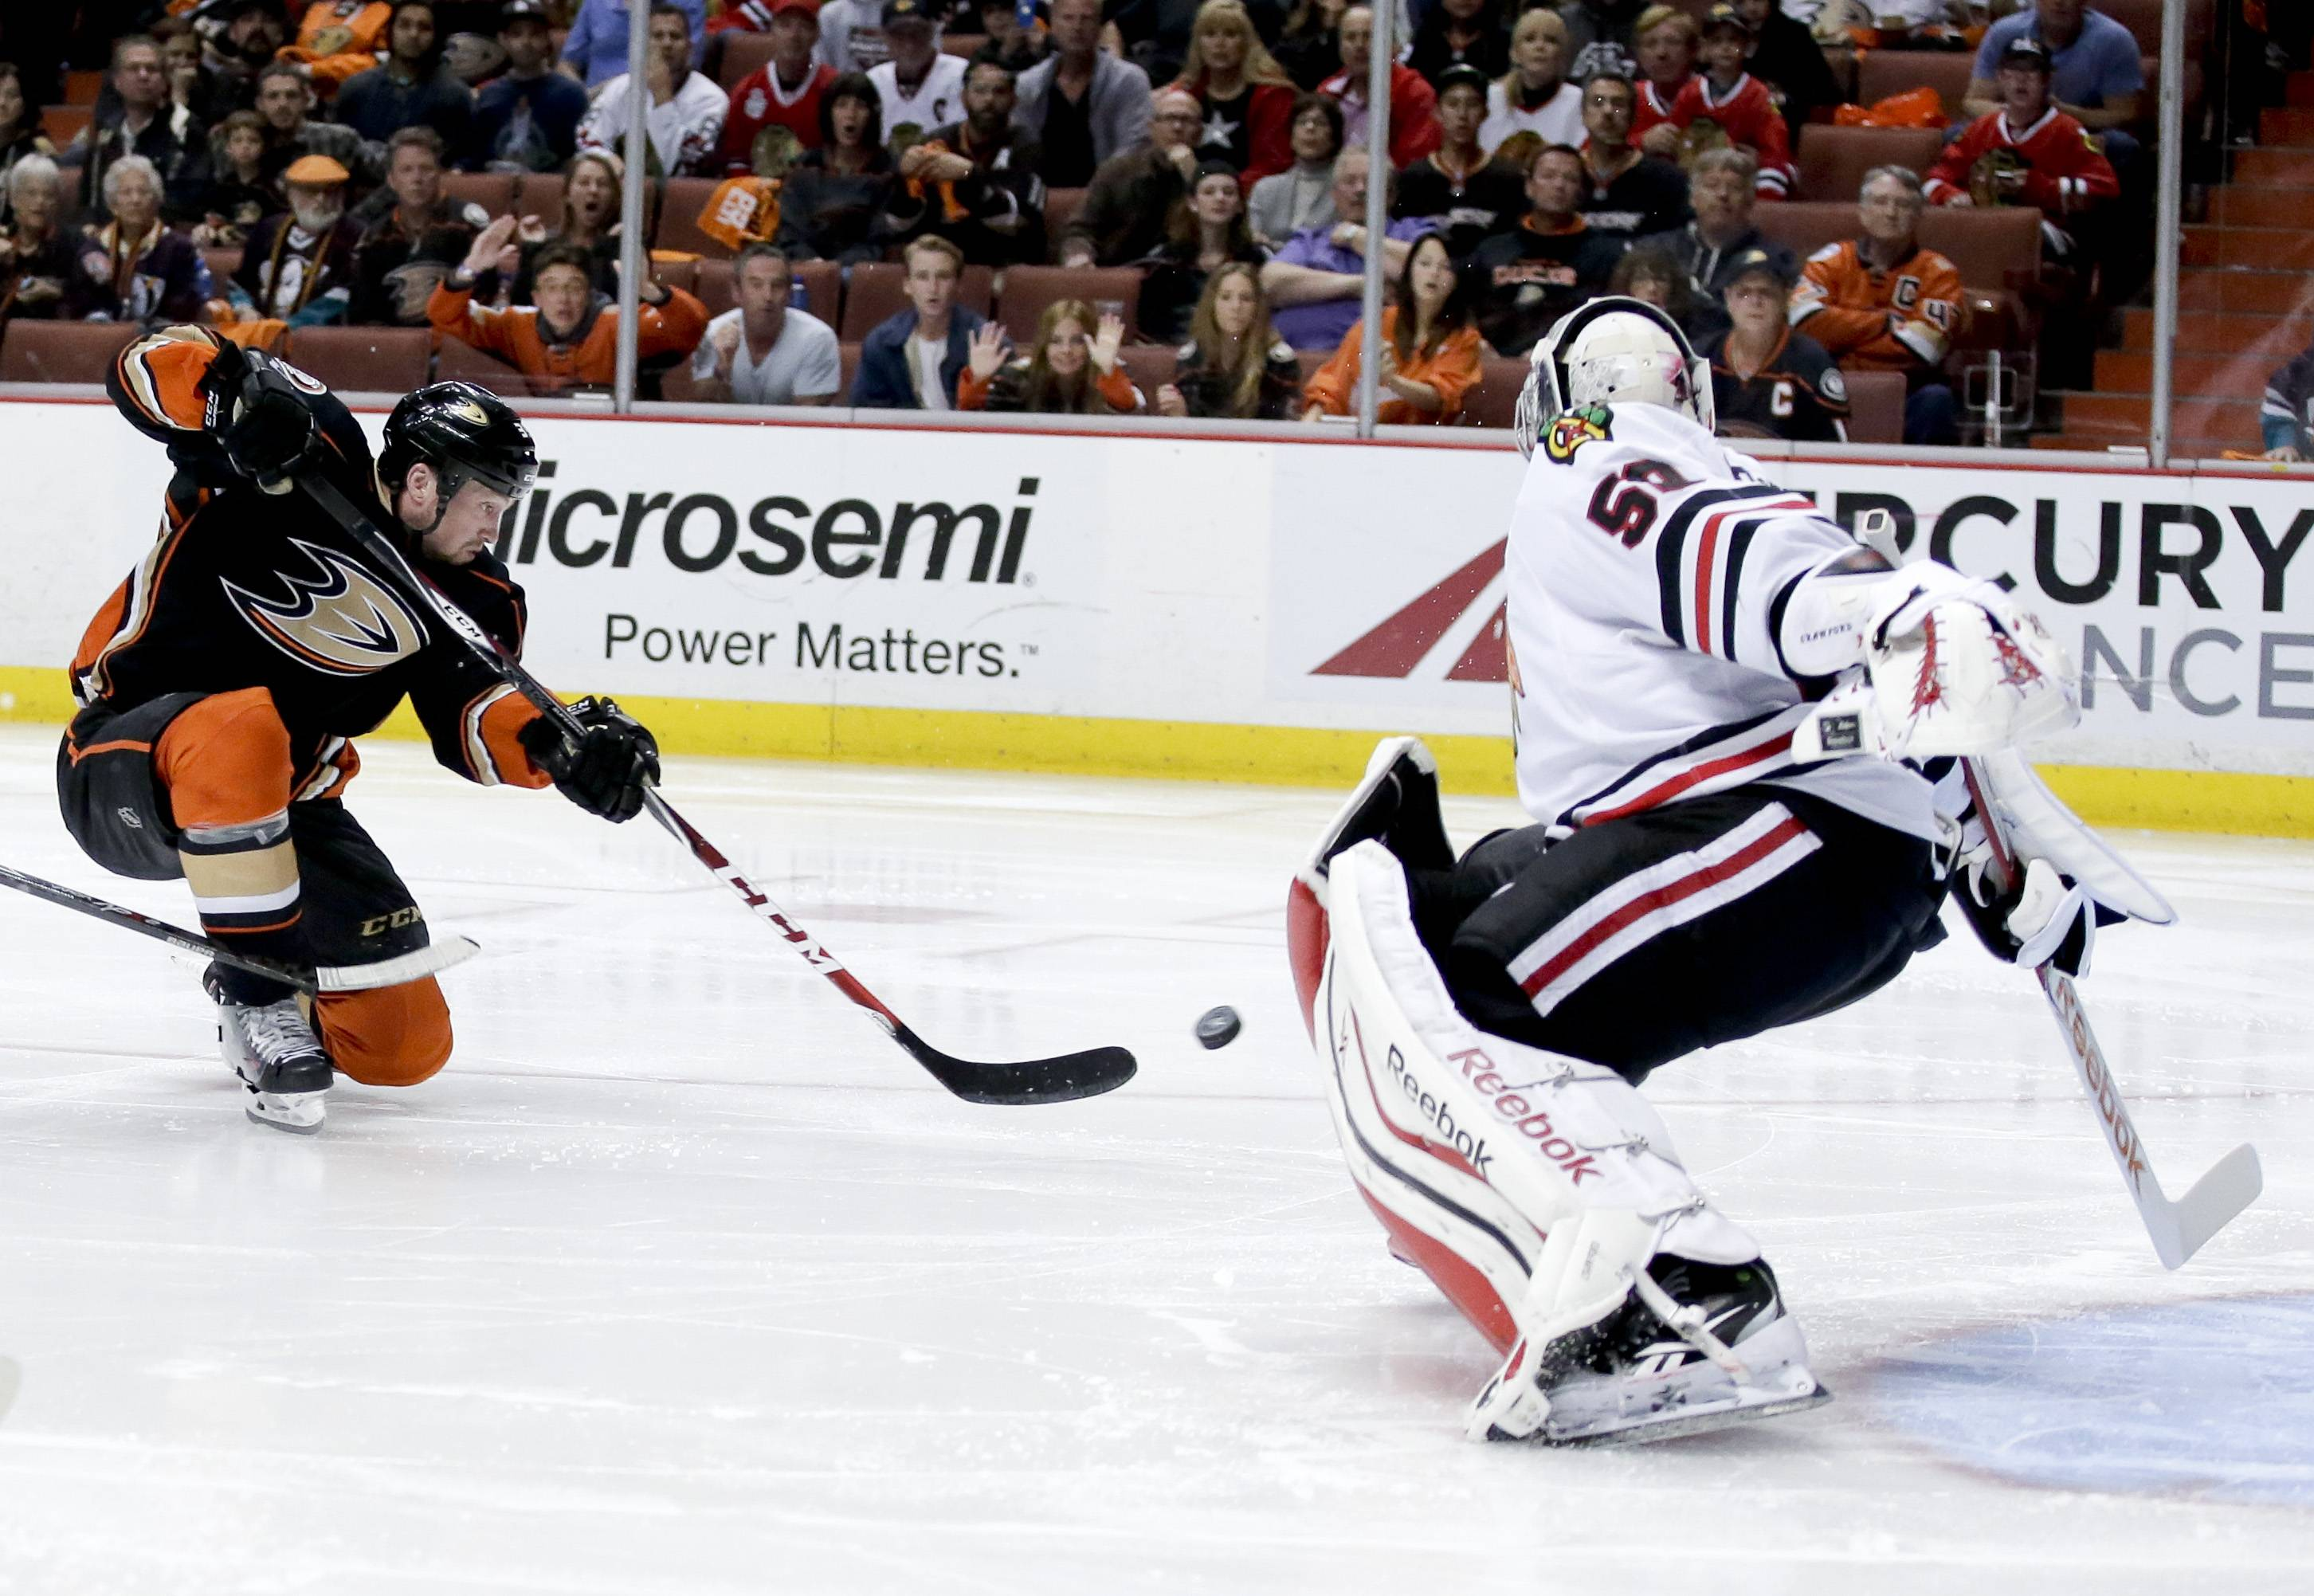 The Ducks' Matt Beleskey scores the game-winning goal seconds into overtime past Hawks goalie Corey Crawford on Monday in Game 5 of the Western Conference final at Anaheim, Calif.